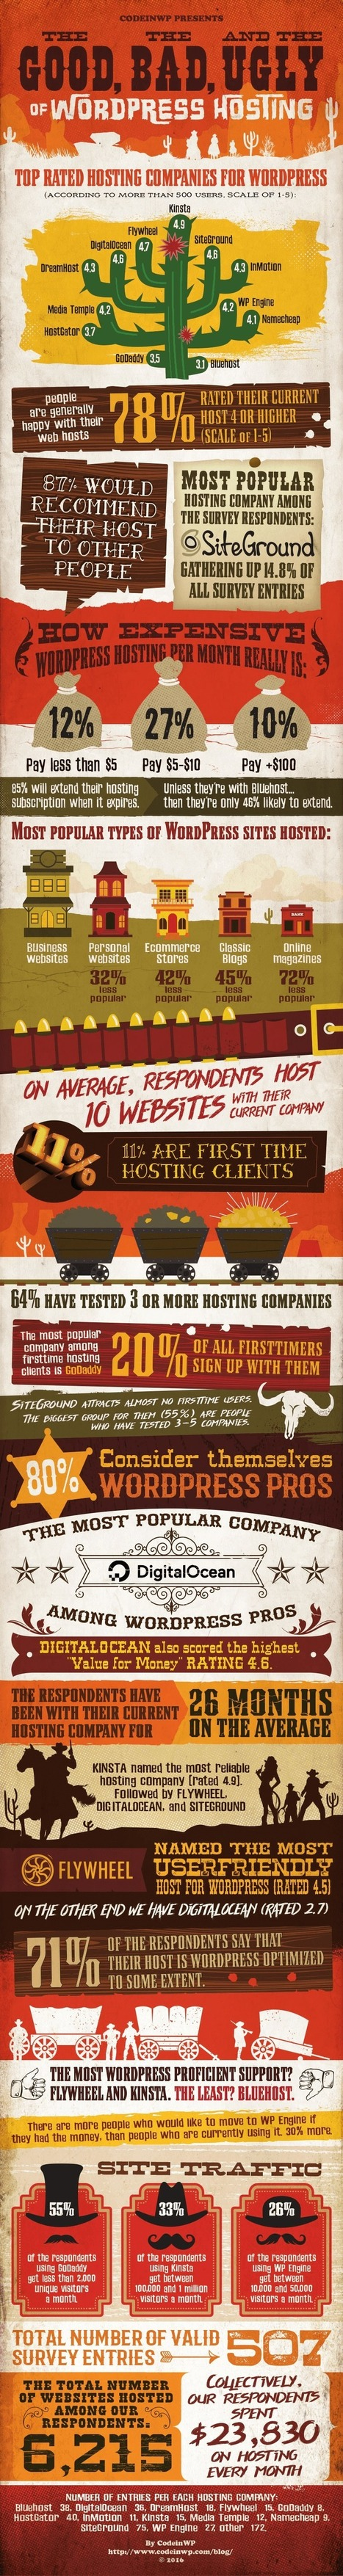 The Good, Bad & Ugly of WordPress Hosting Companies [Infographic] | Daily Infographic | Planning | Scoop.it